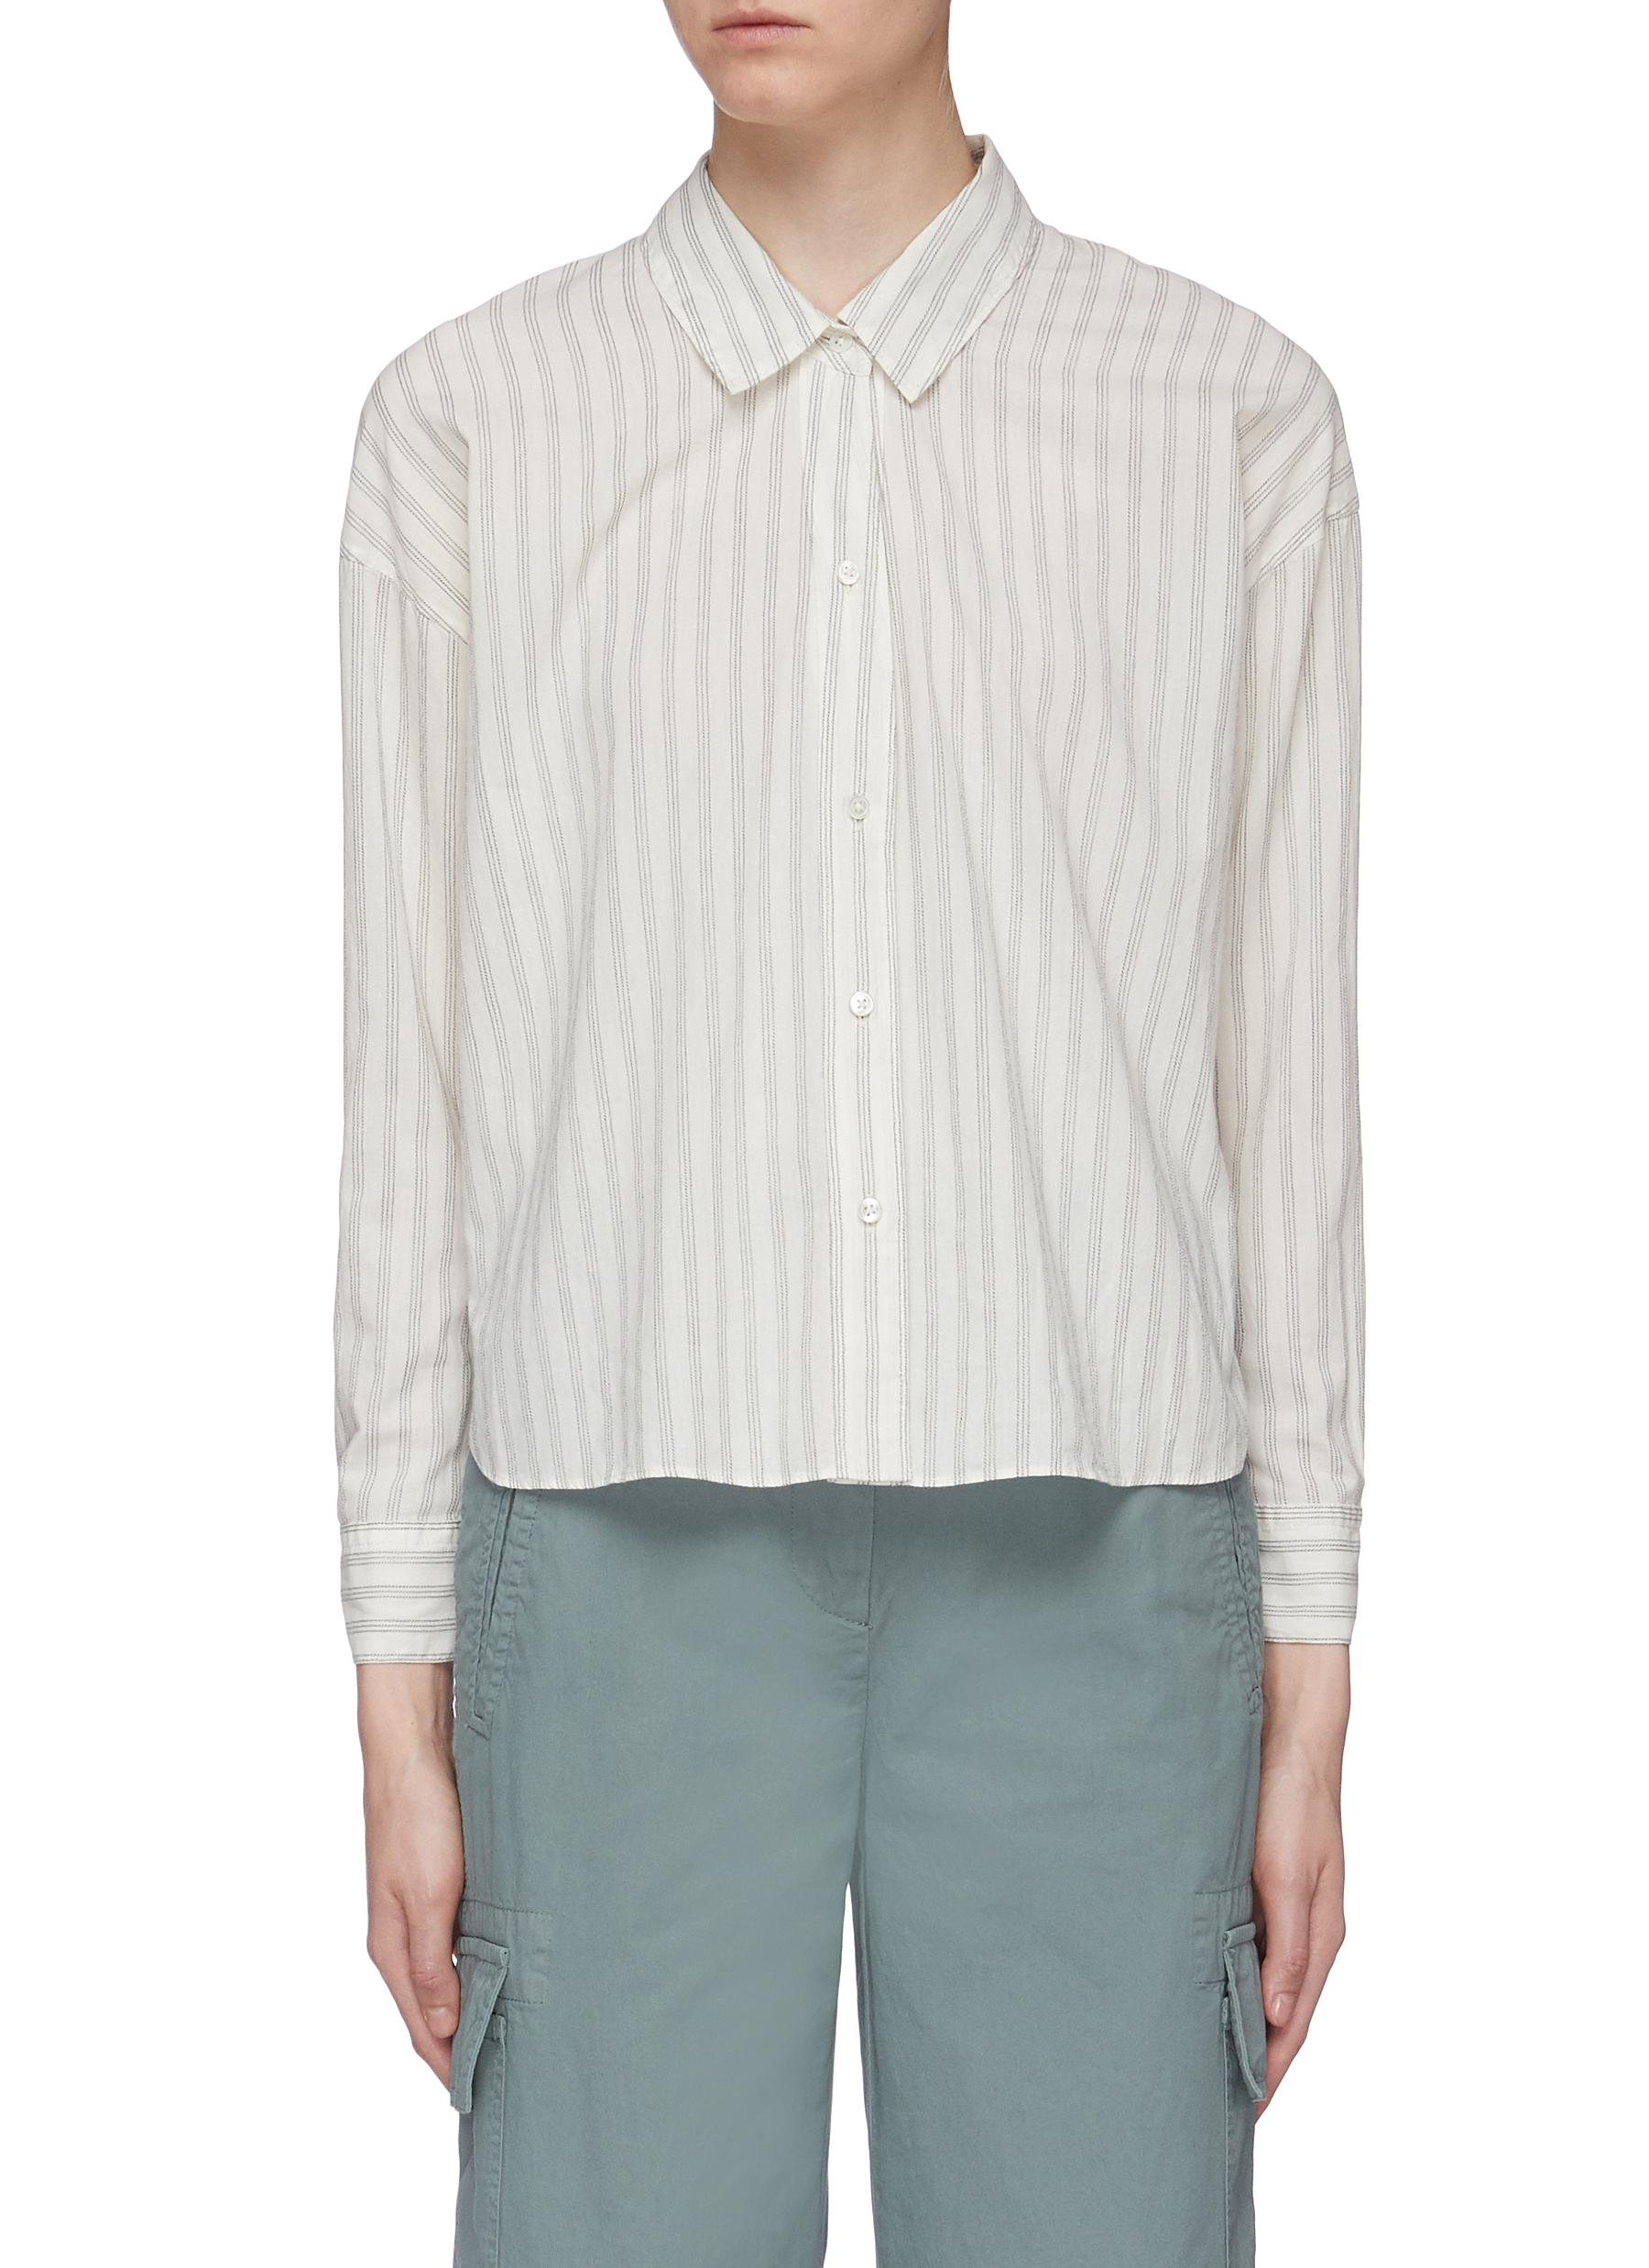 Stripe shirt by James Perse